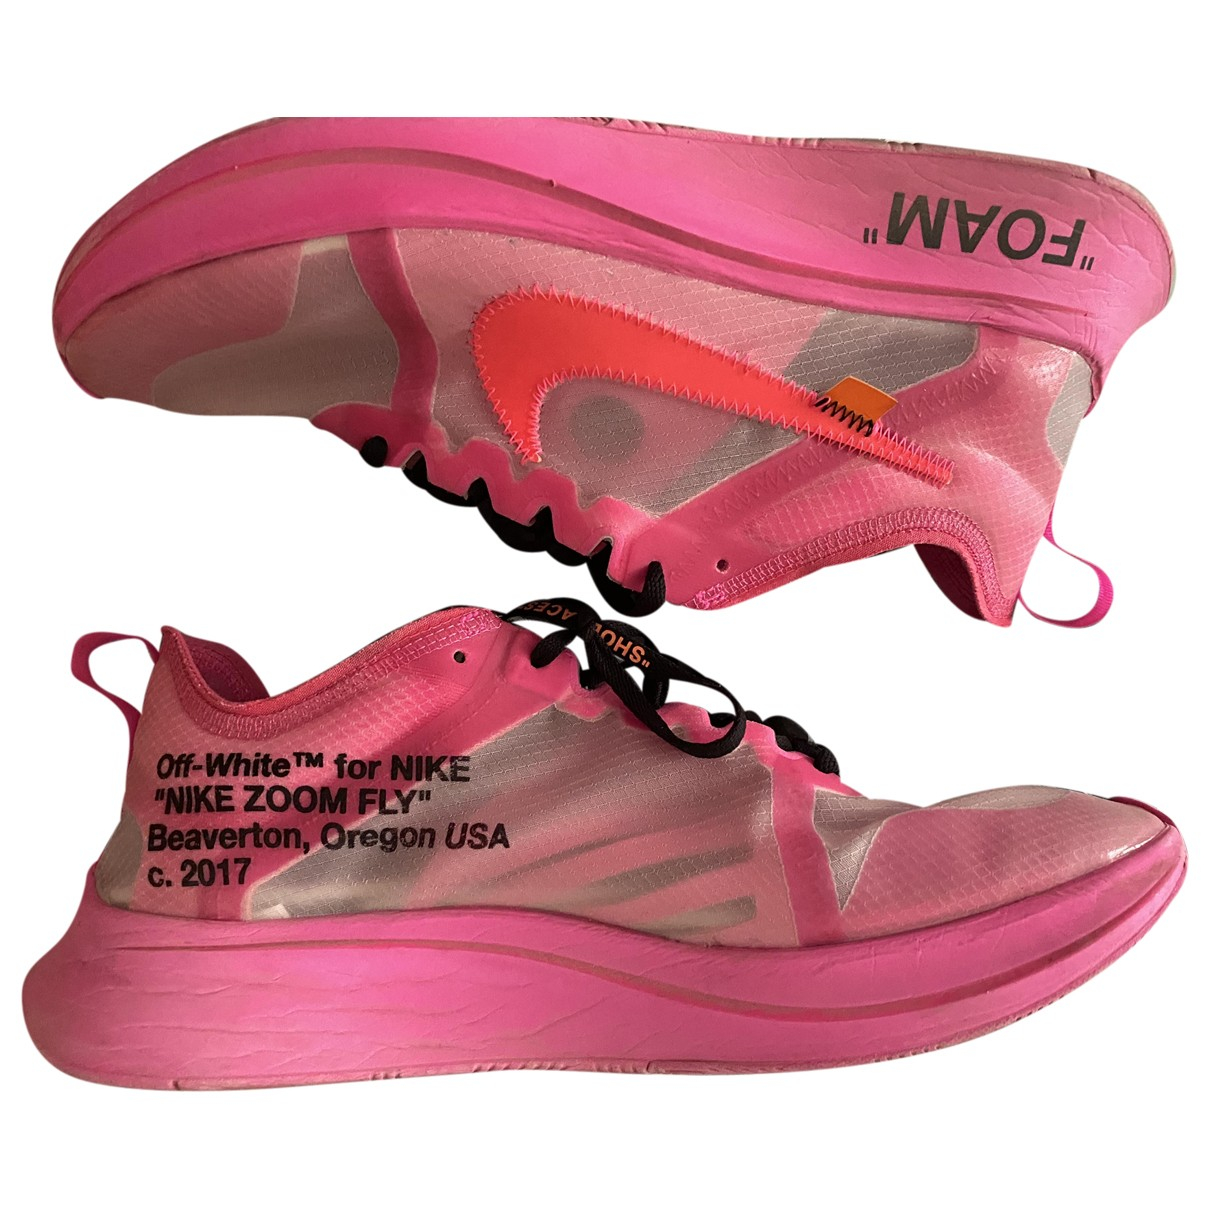 Nike X Off-white Zoom Fly Pink Trainers for Men 10.5 US